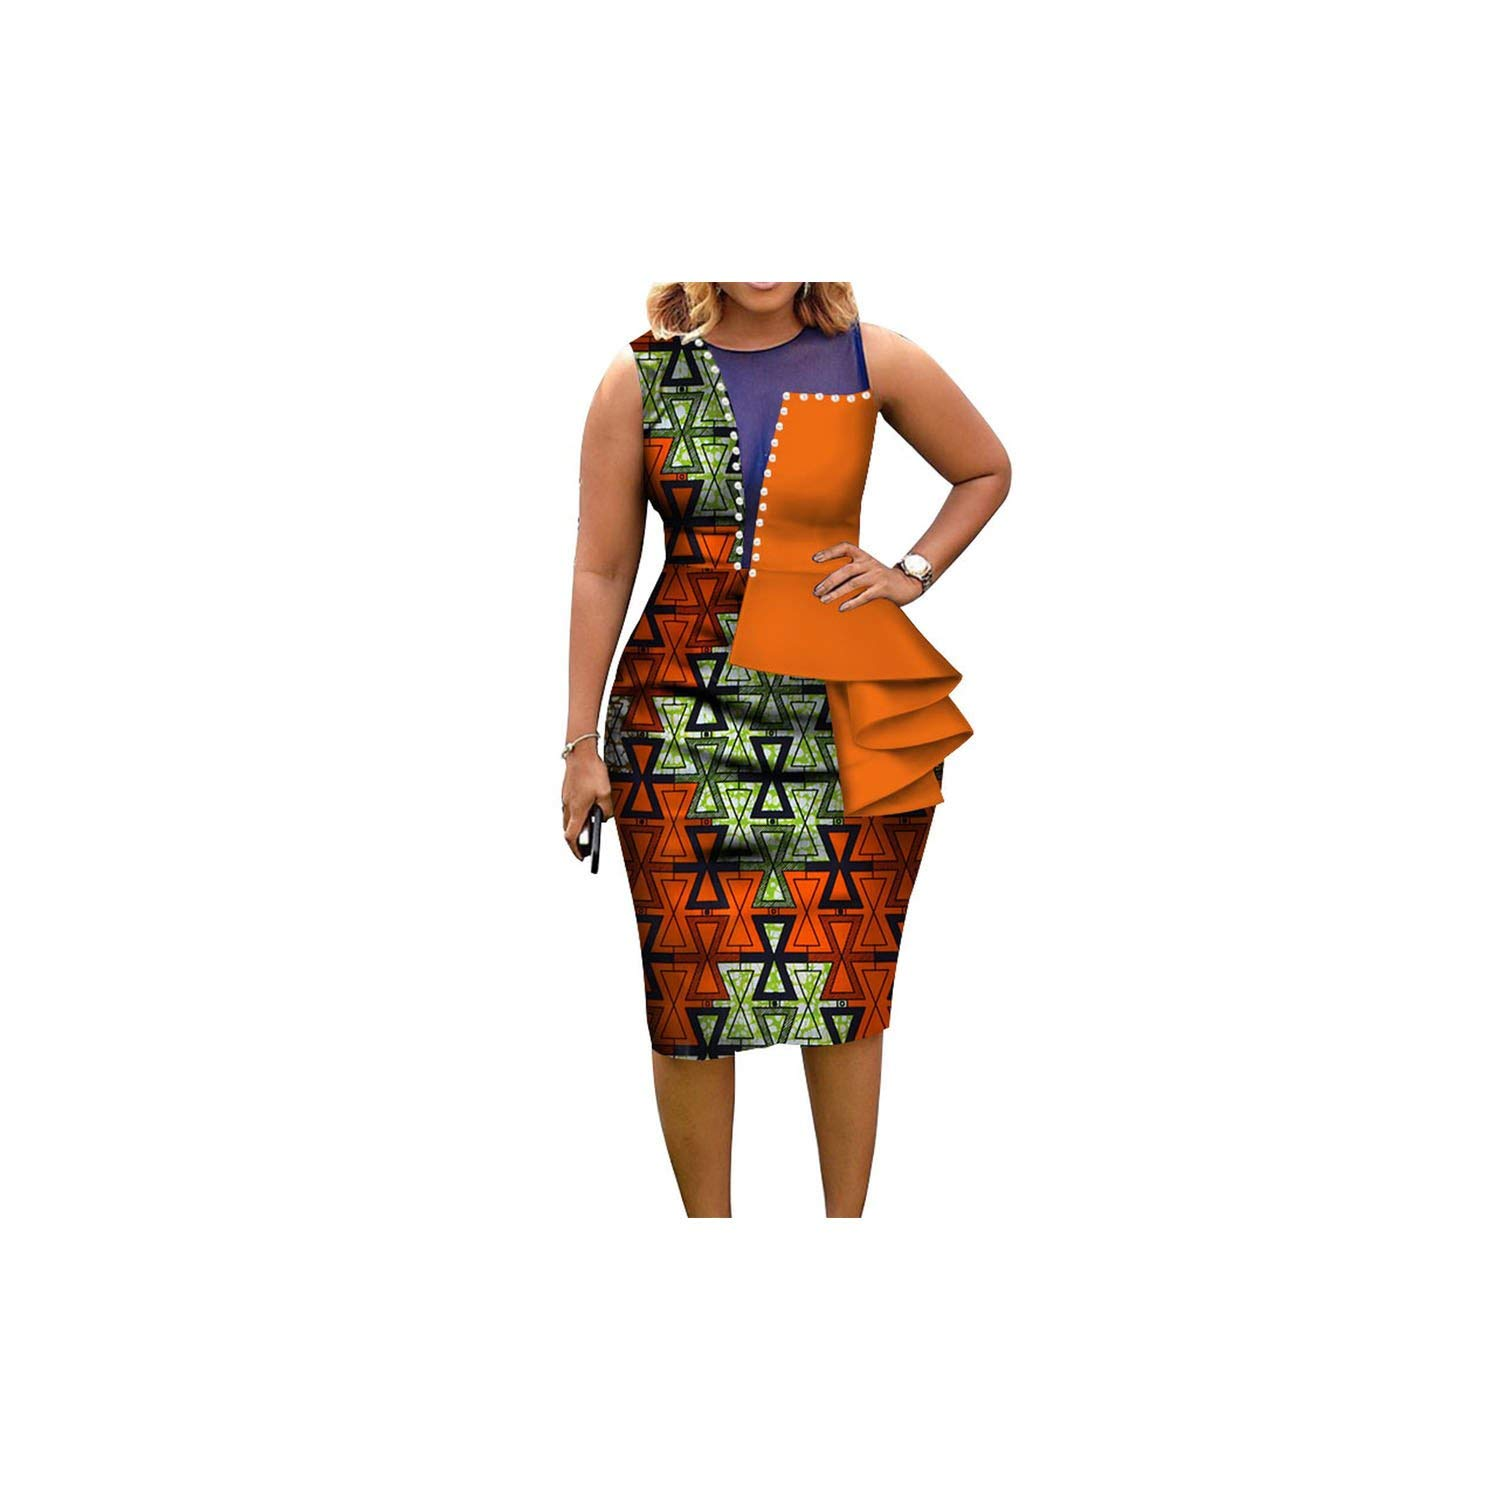 African Dresses for Women African Print Cotton Midi Dress Sleeveless Elegant Party Clothes,3,XXL